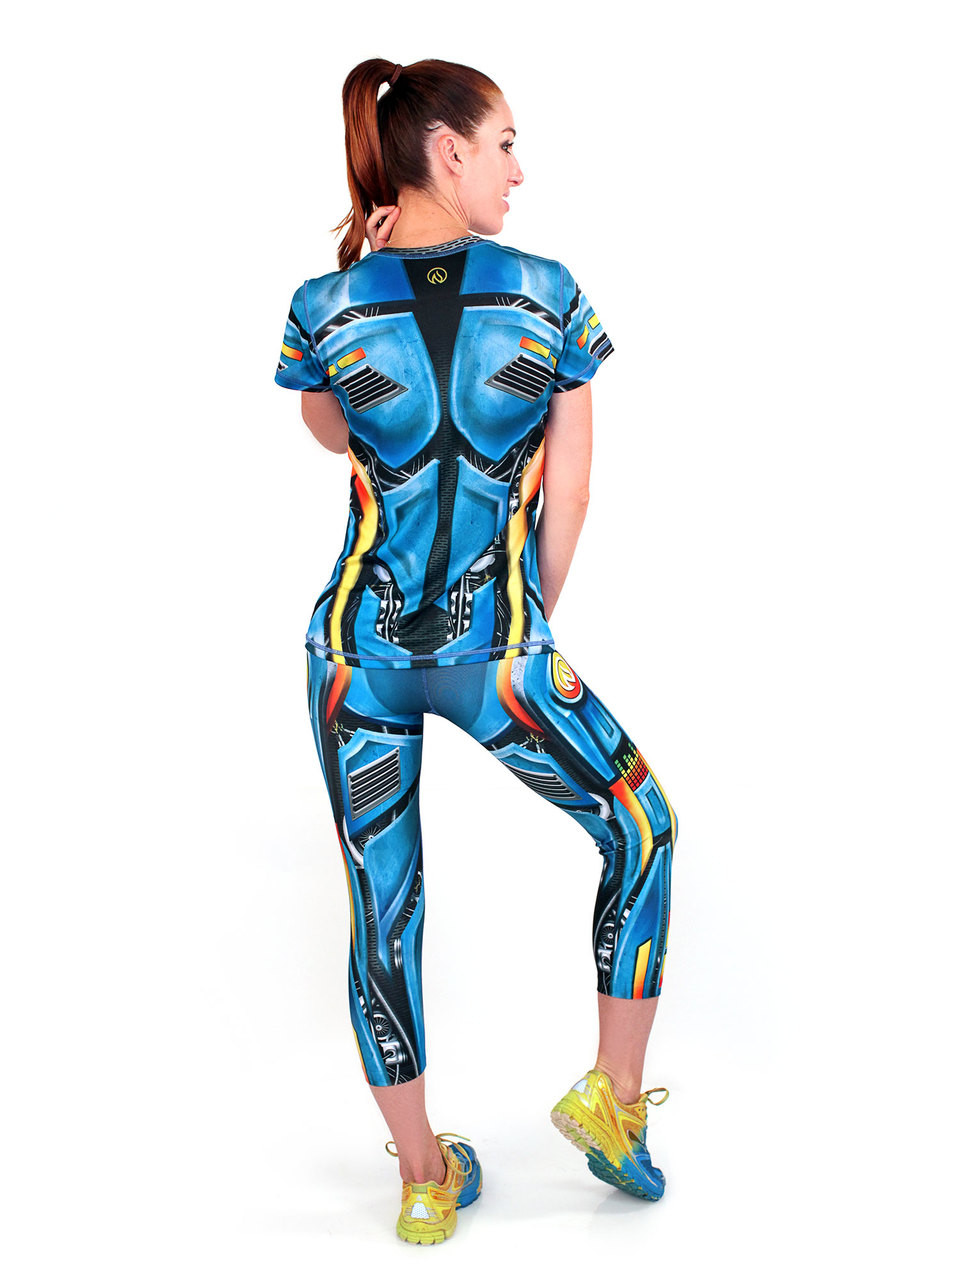 Women's XC Biodroid Kit